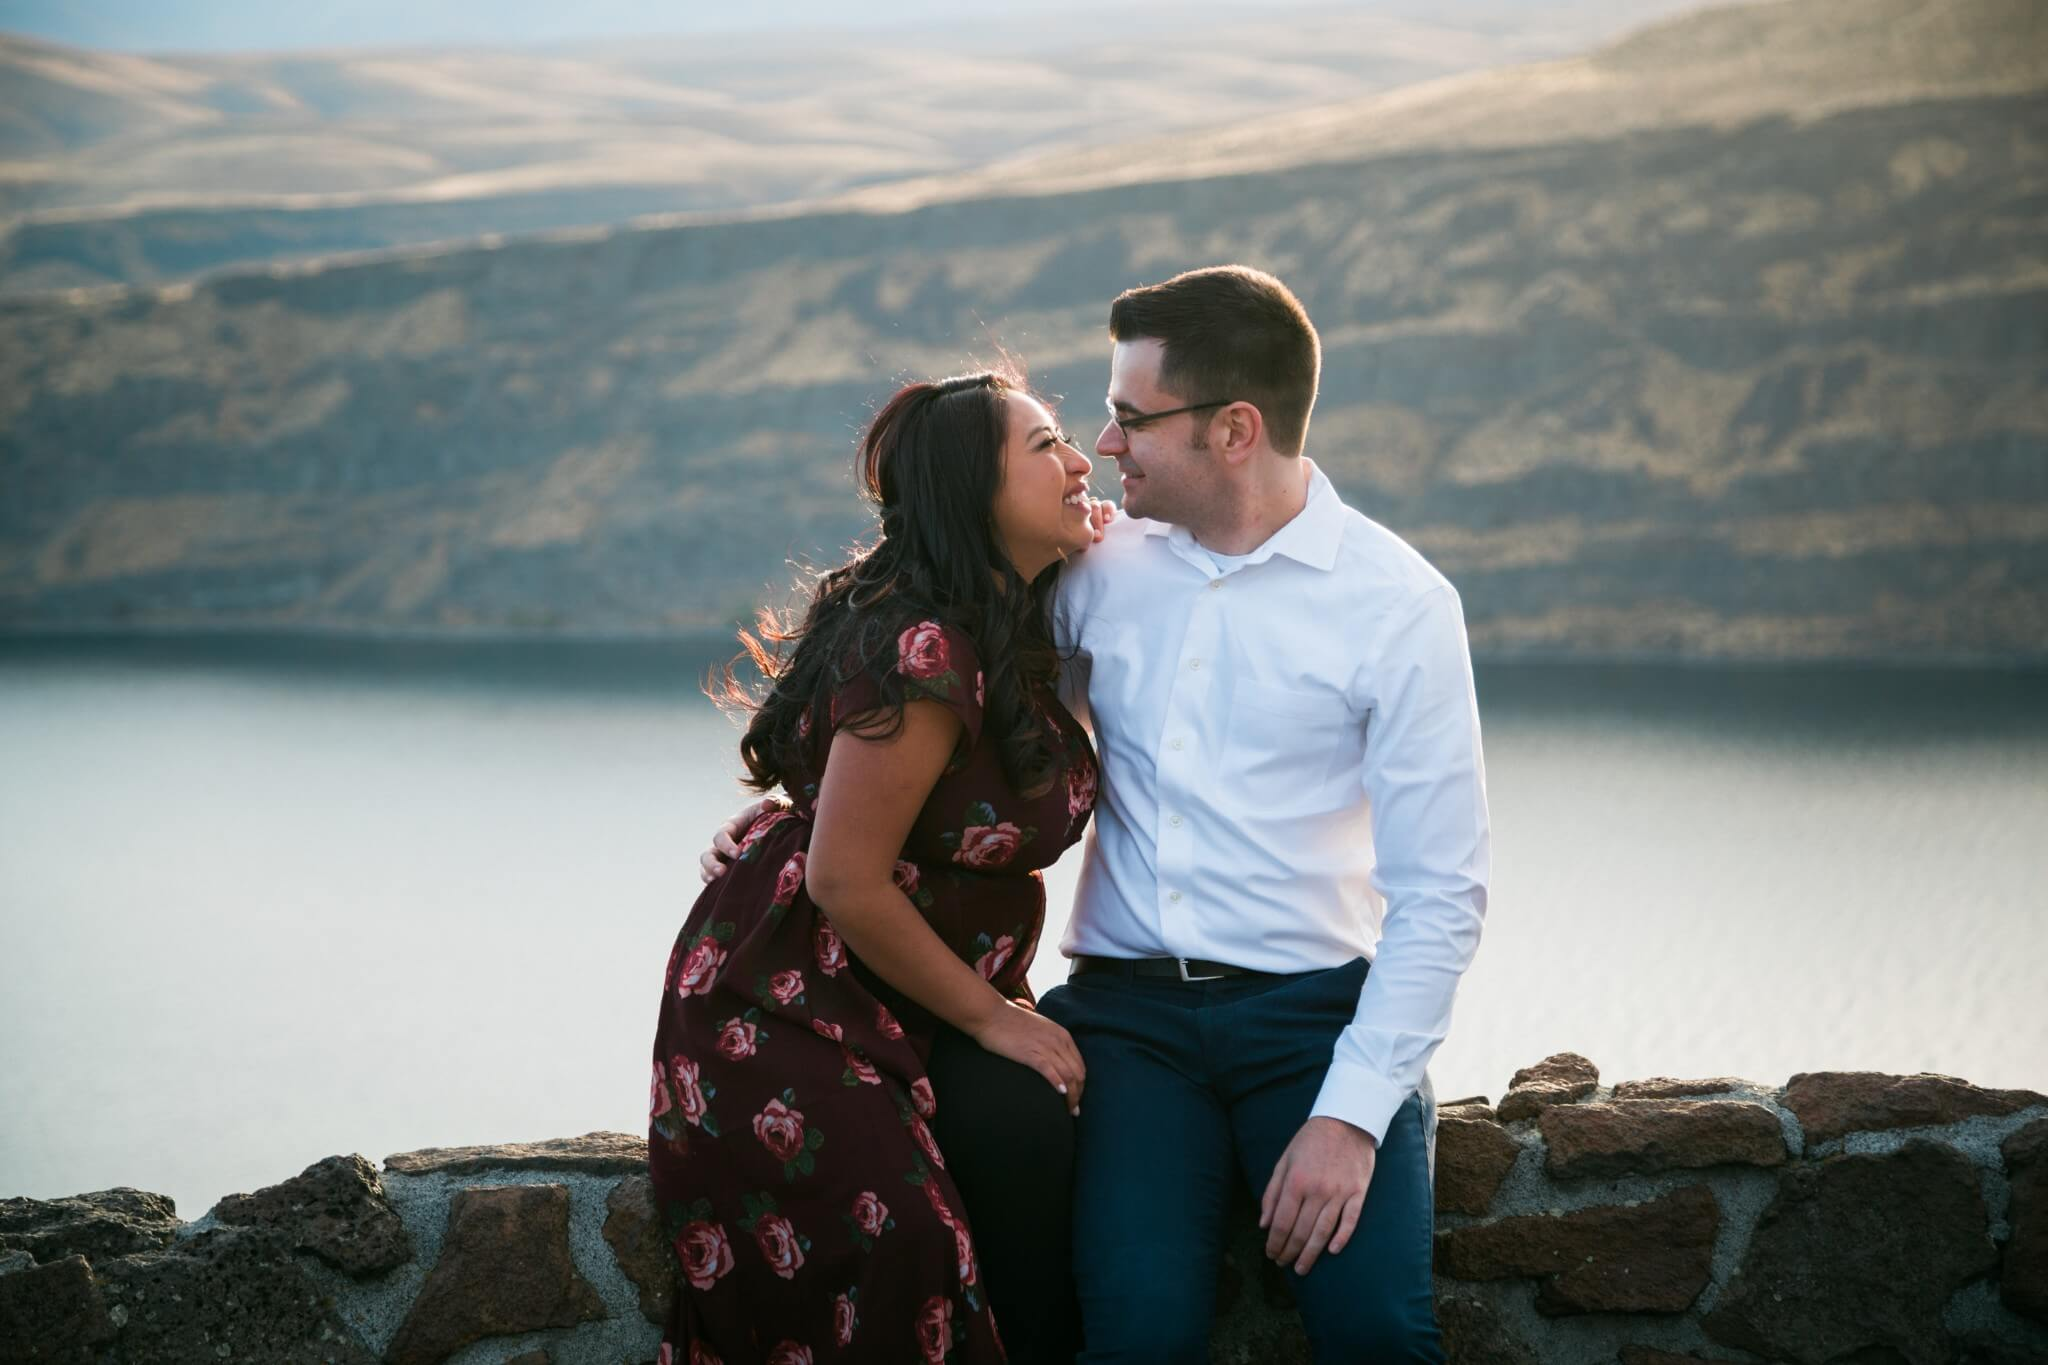 Lesly & Michael Vantage Engagement by Bill Weisgerber Spokane Photographer (24 of 71).jpg